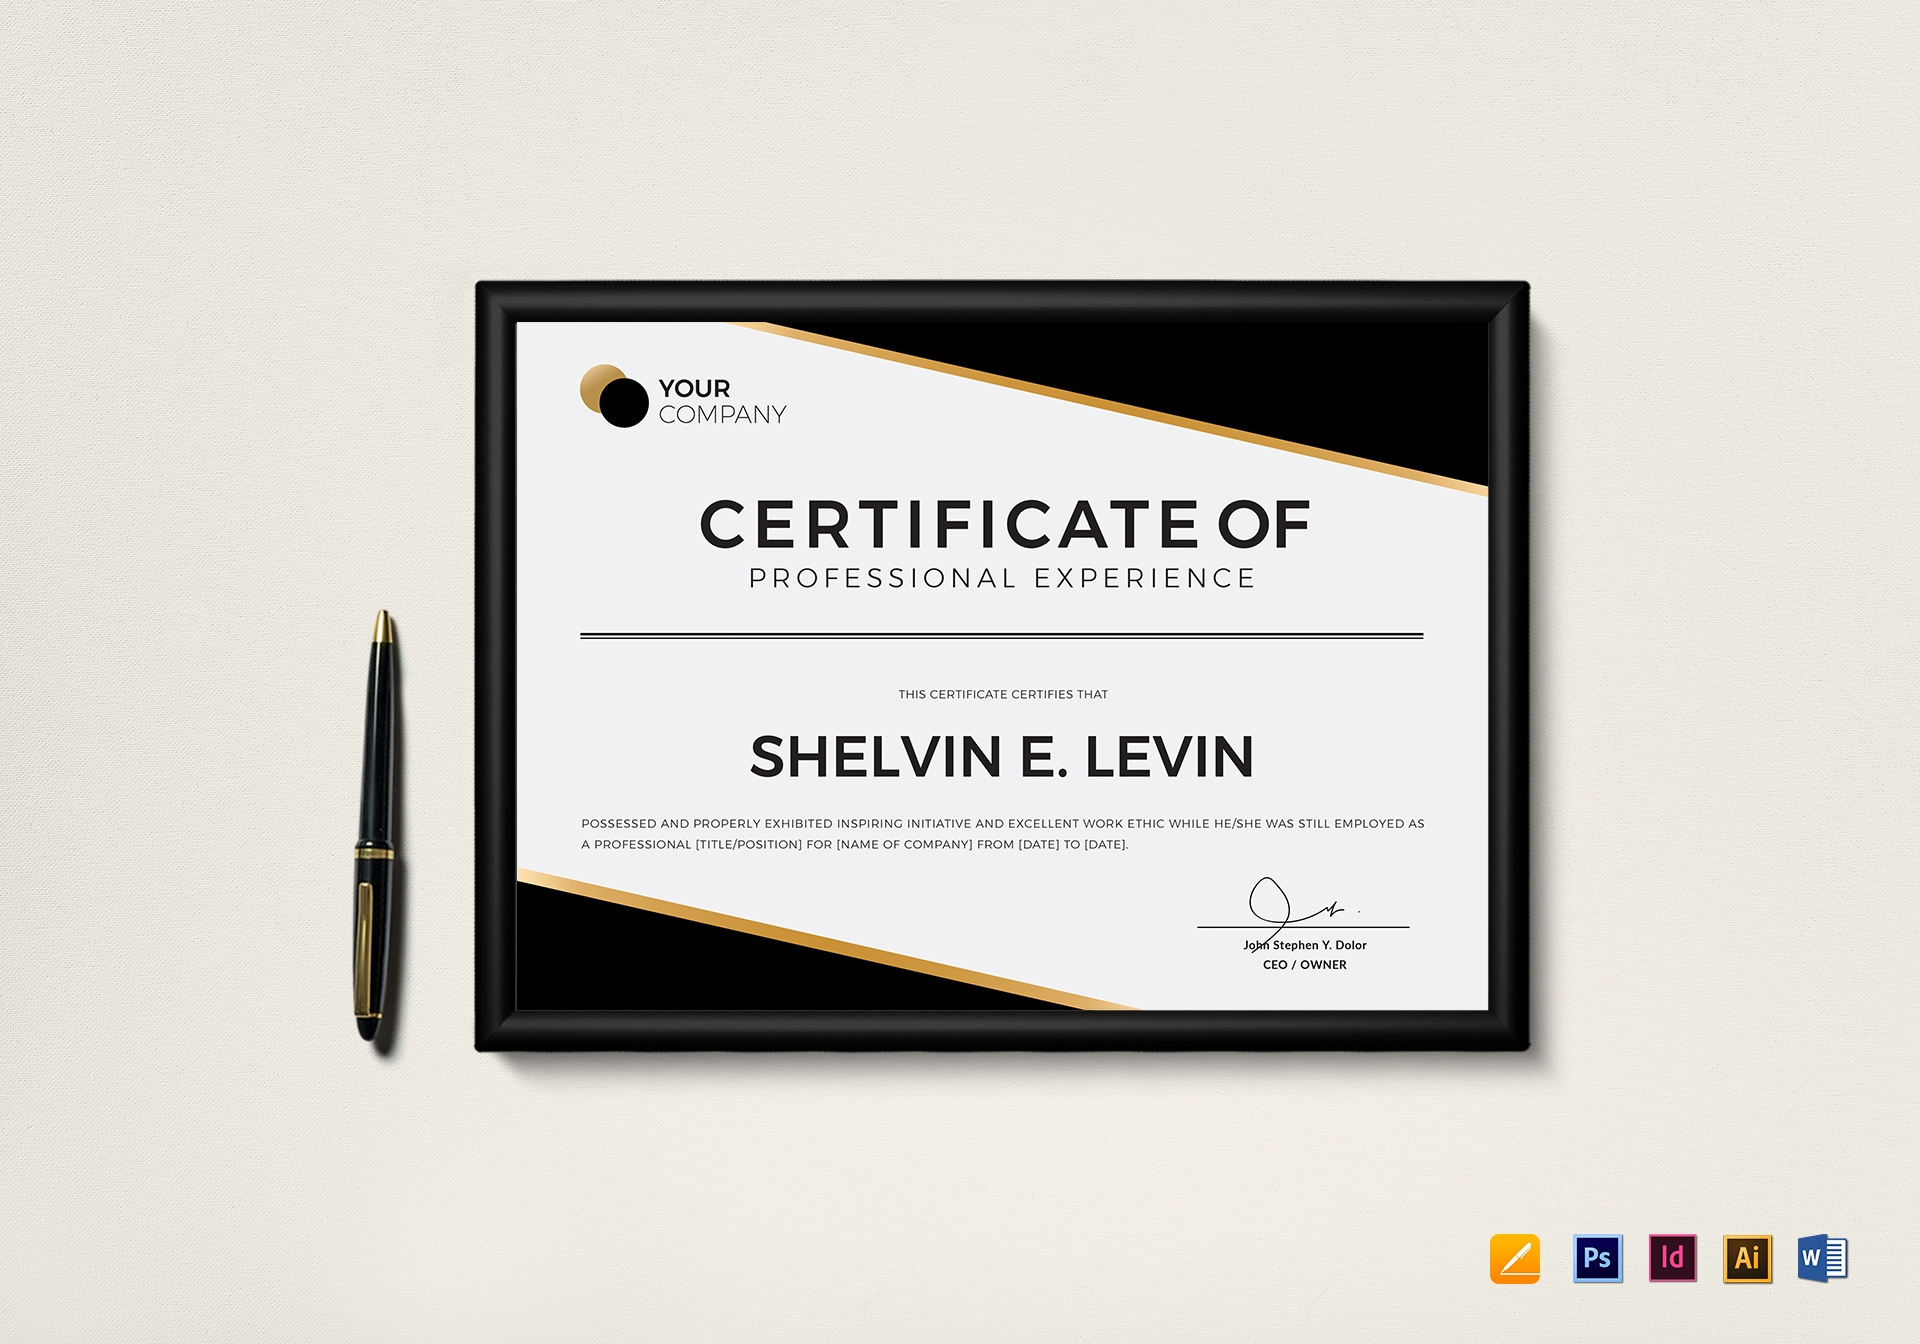 professional experience certificate template